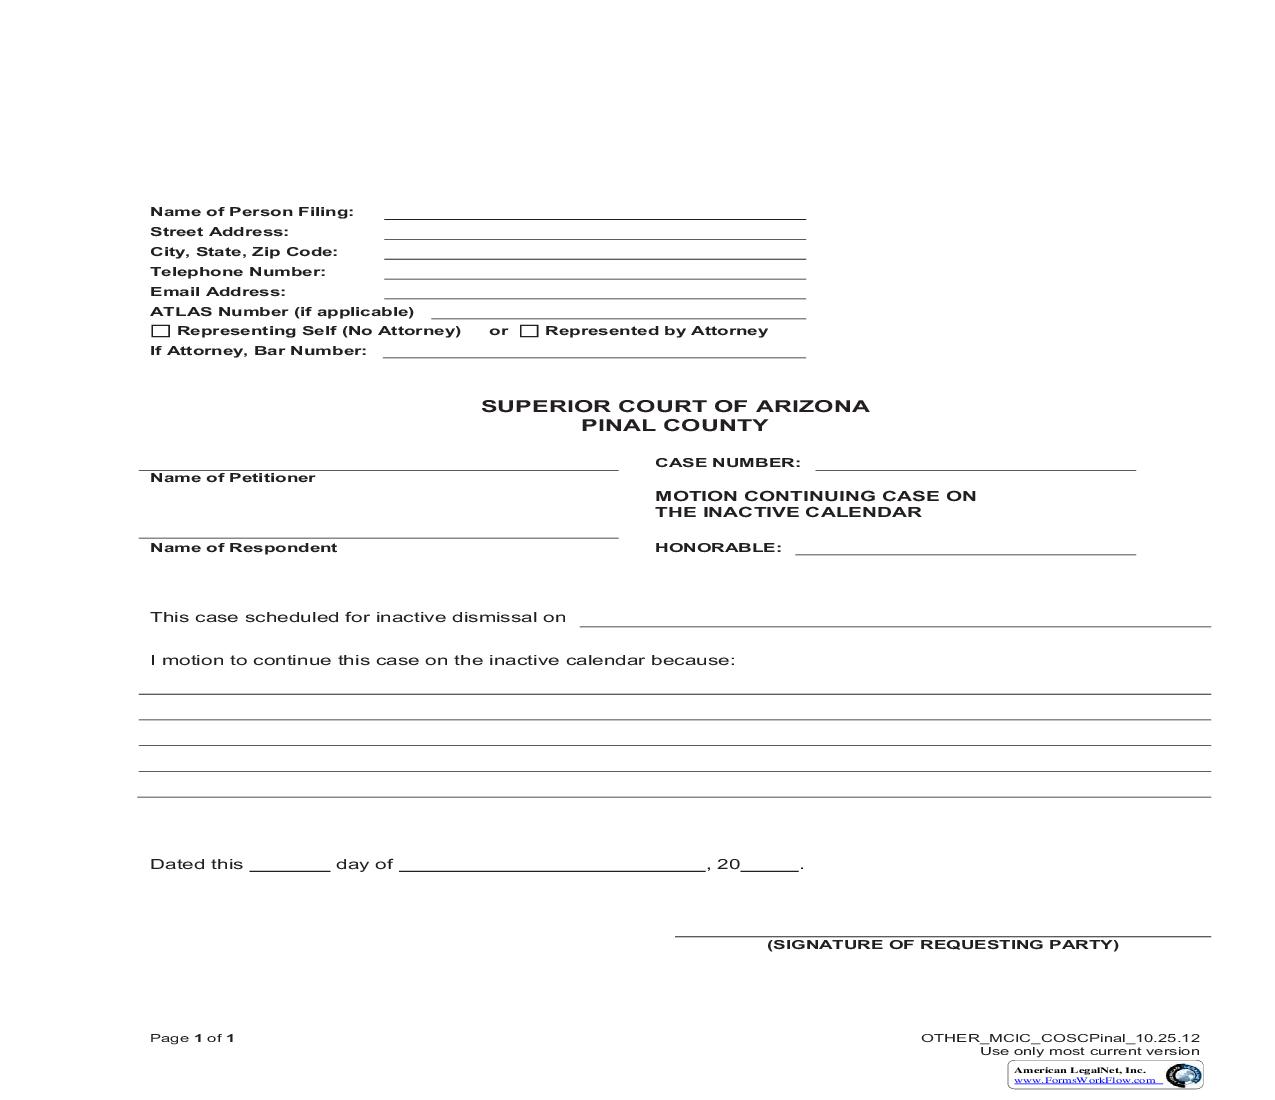 Motion Continuing Case On The Inactive Calendar   Pdf Fpdf Doc Docx   Arizona